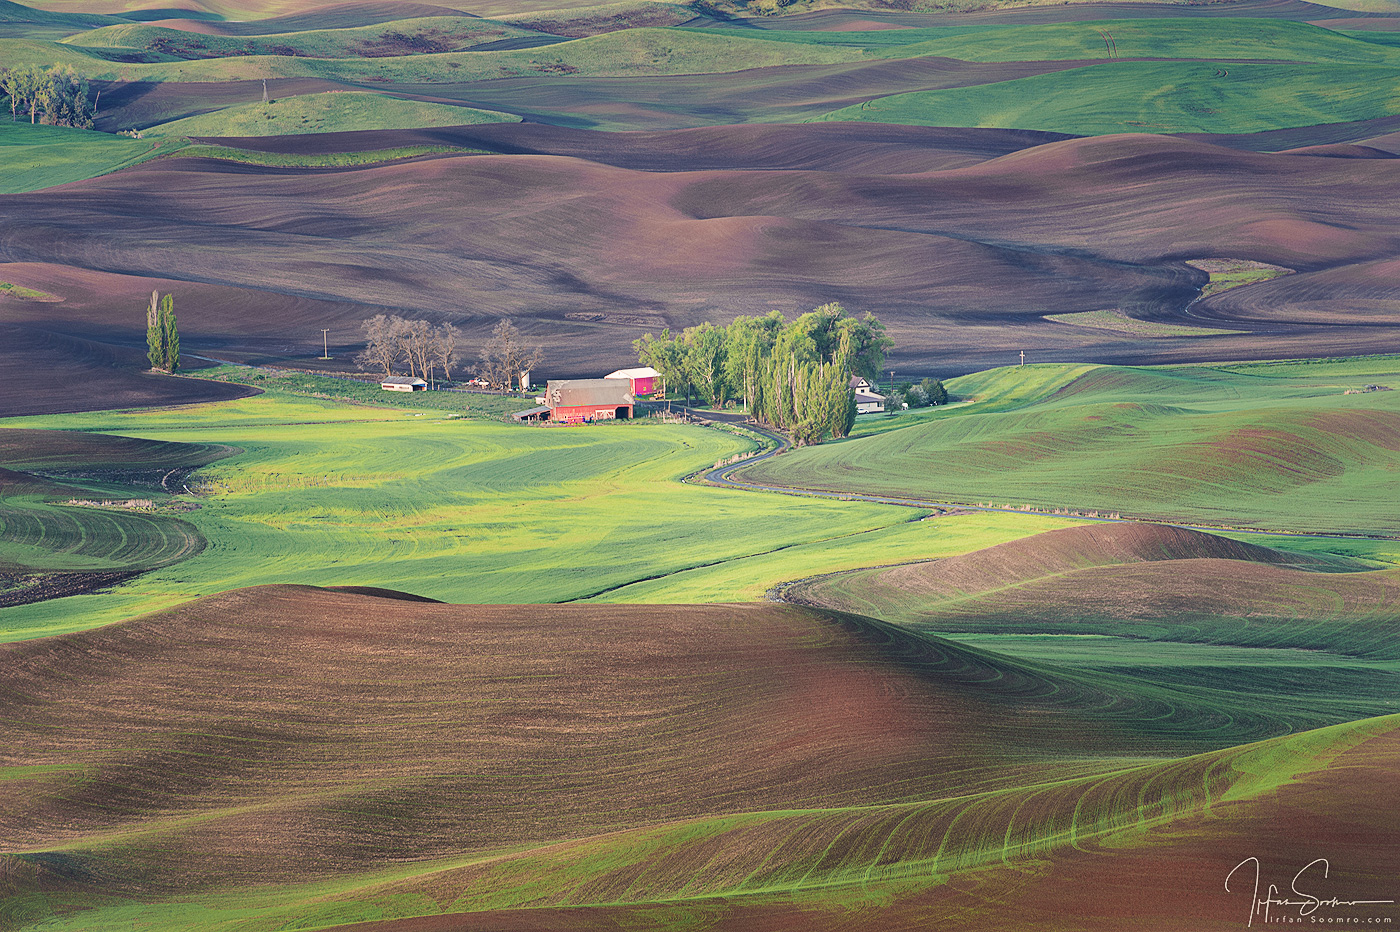 1105-Palouse-045-_DSC5163-1-copy-web.jpg